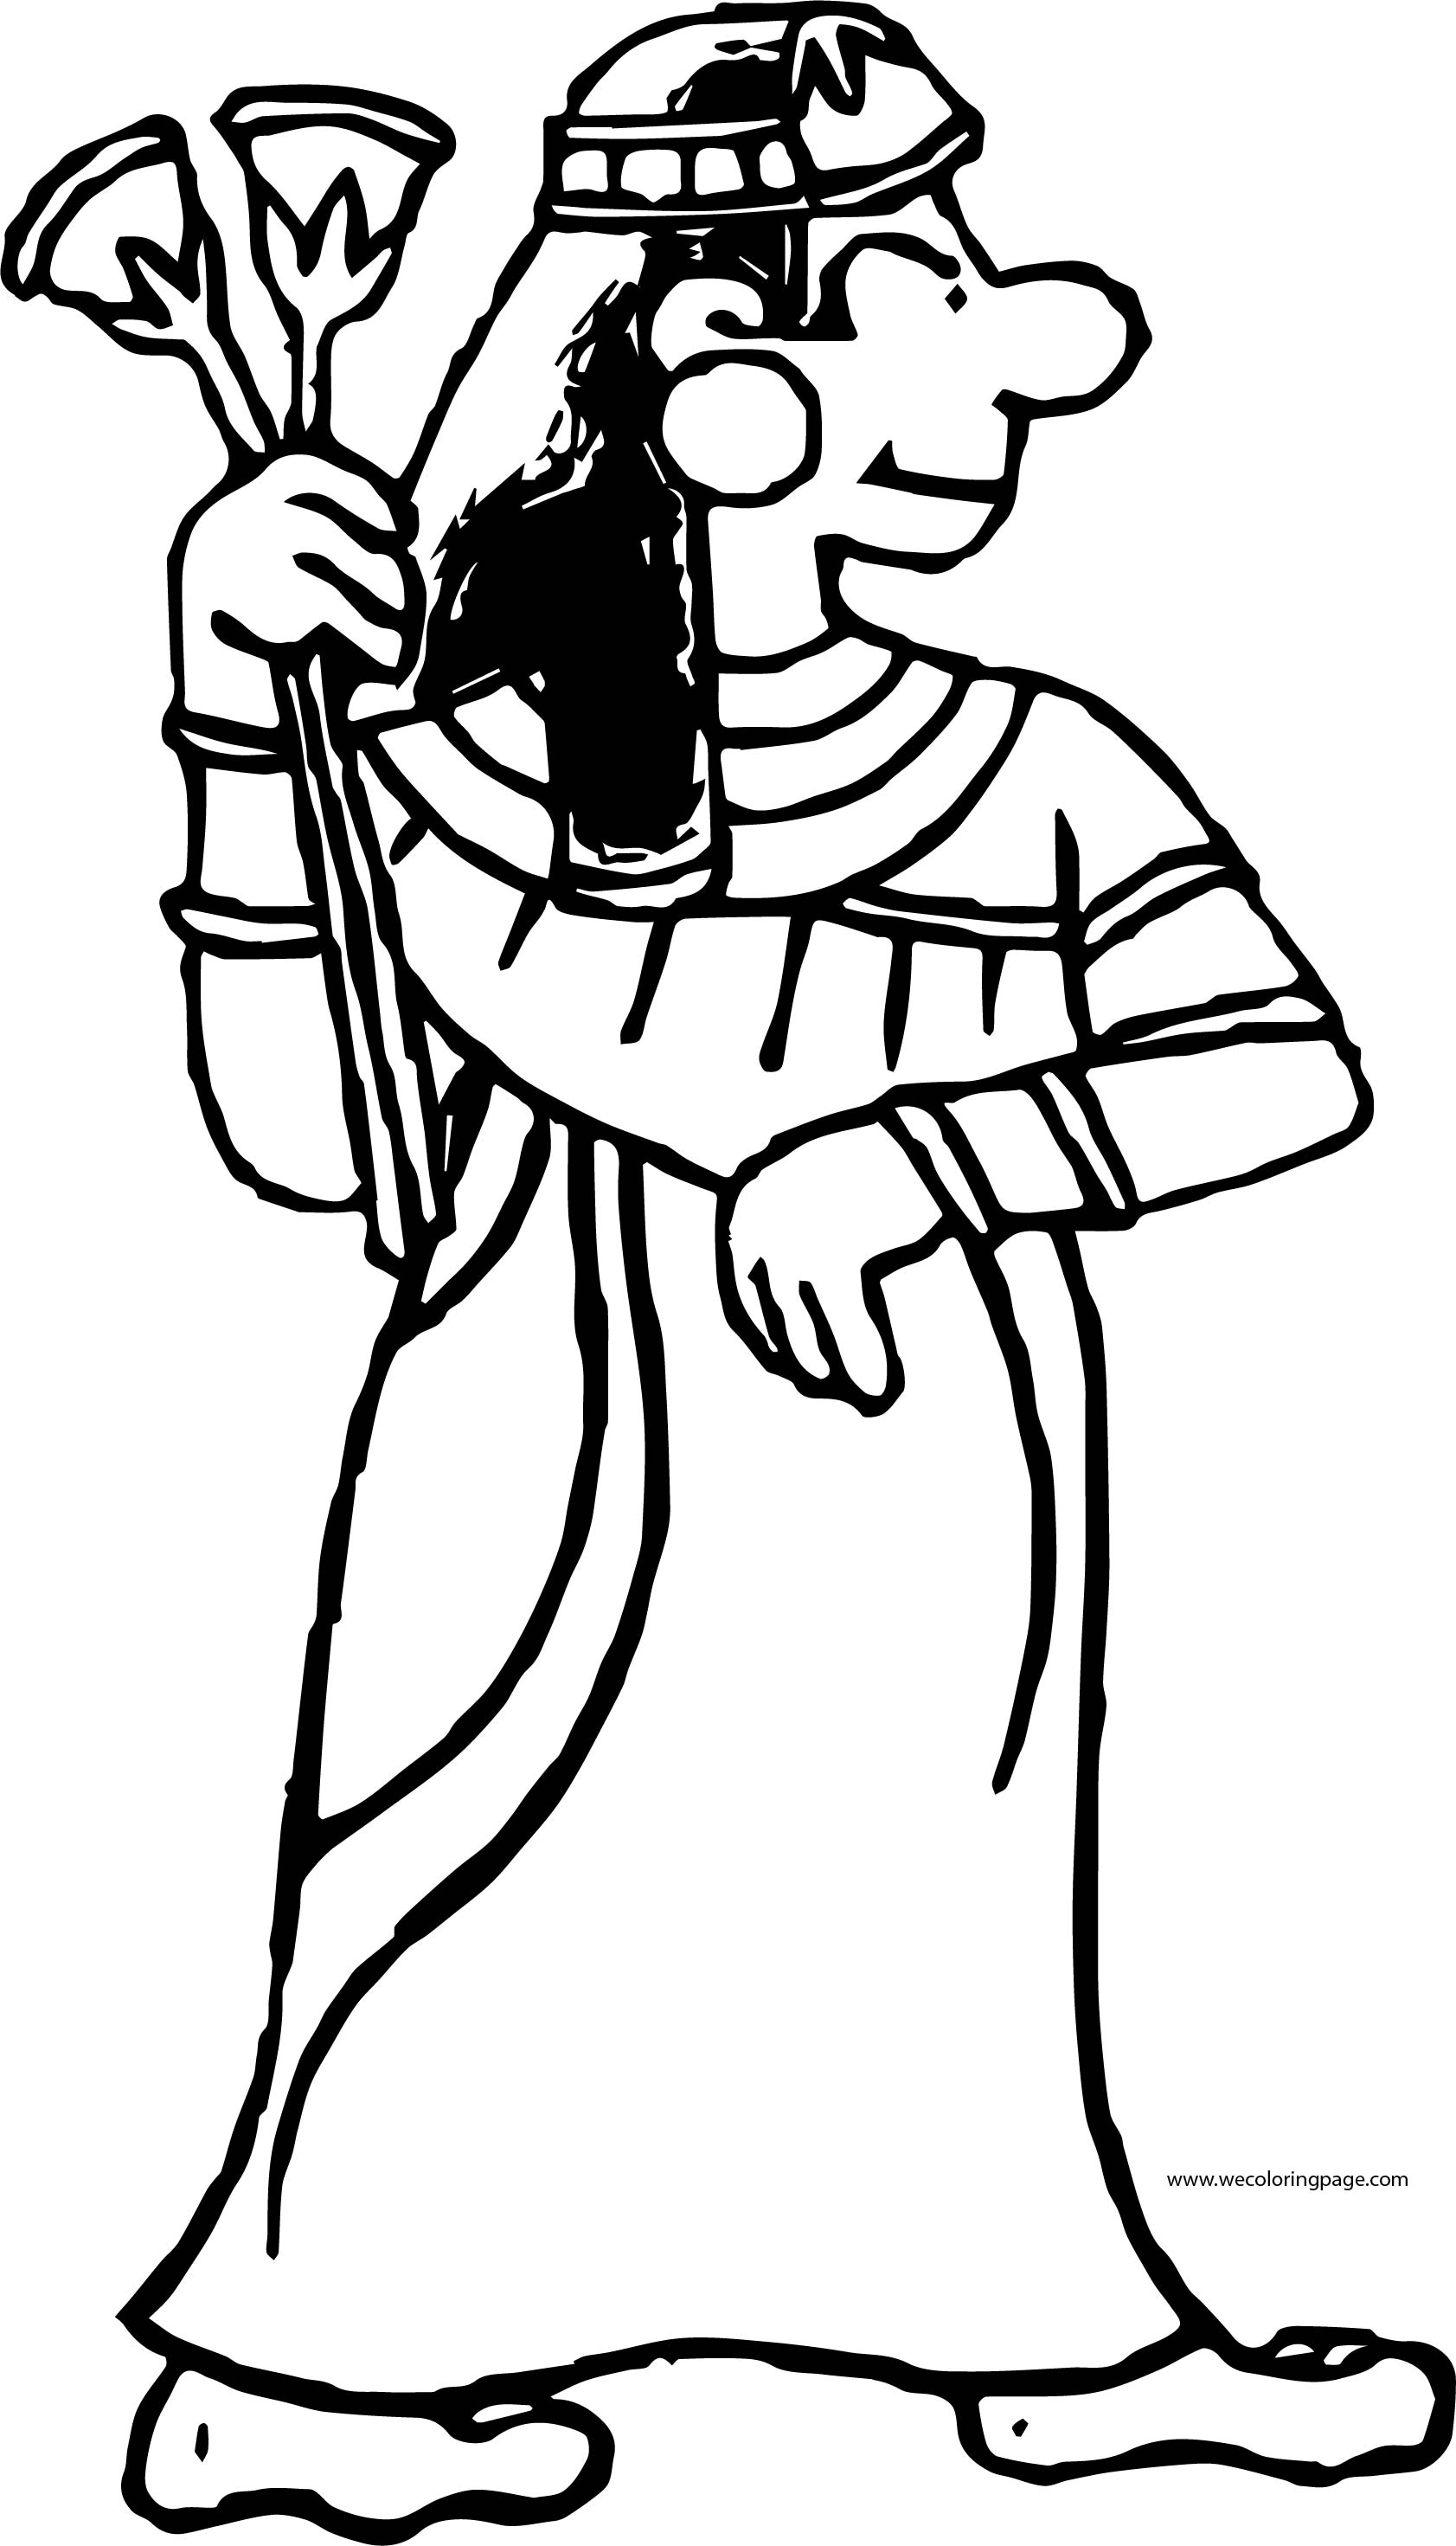 egyptian women coloring pages - photo#34